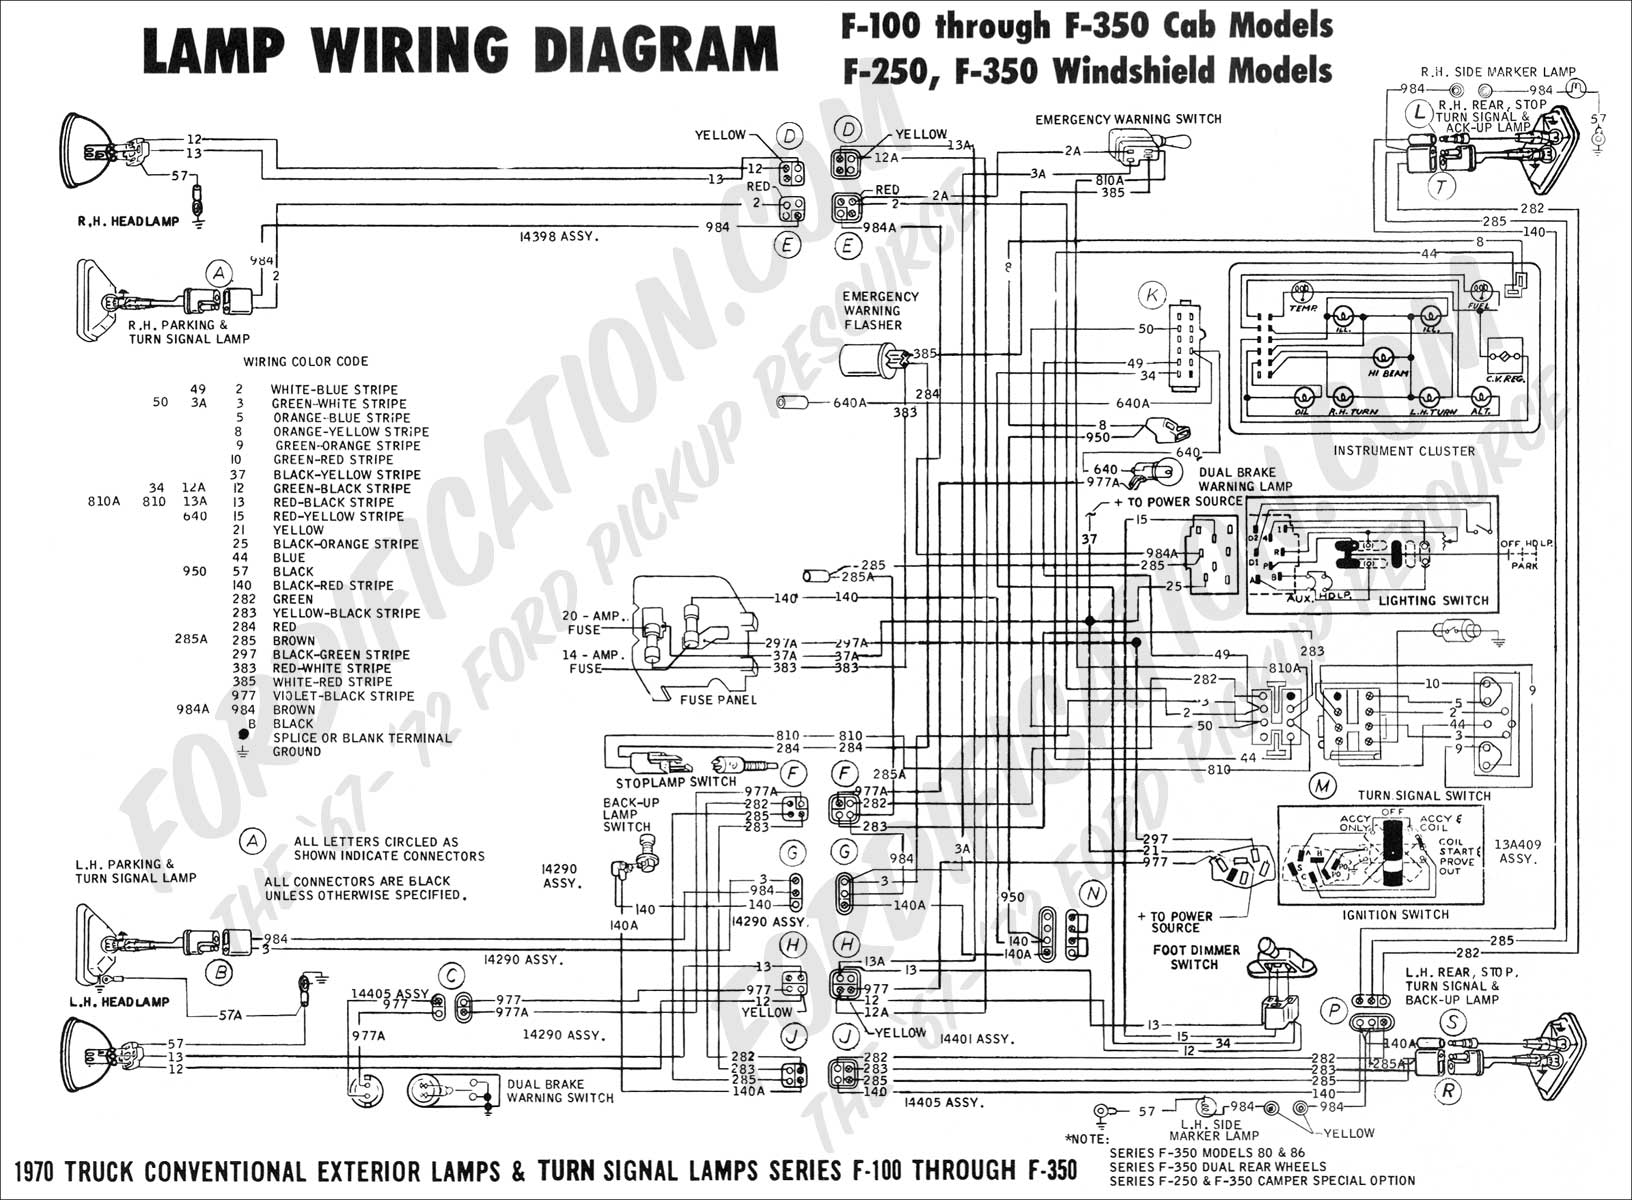 wiring diagram_70ext lights01 ford f250 wiring diagram online f250 trailer wiring diagram 1999 ford f250 wiring diagram lt frt door at alyssarenee.co